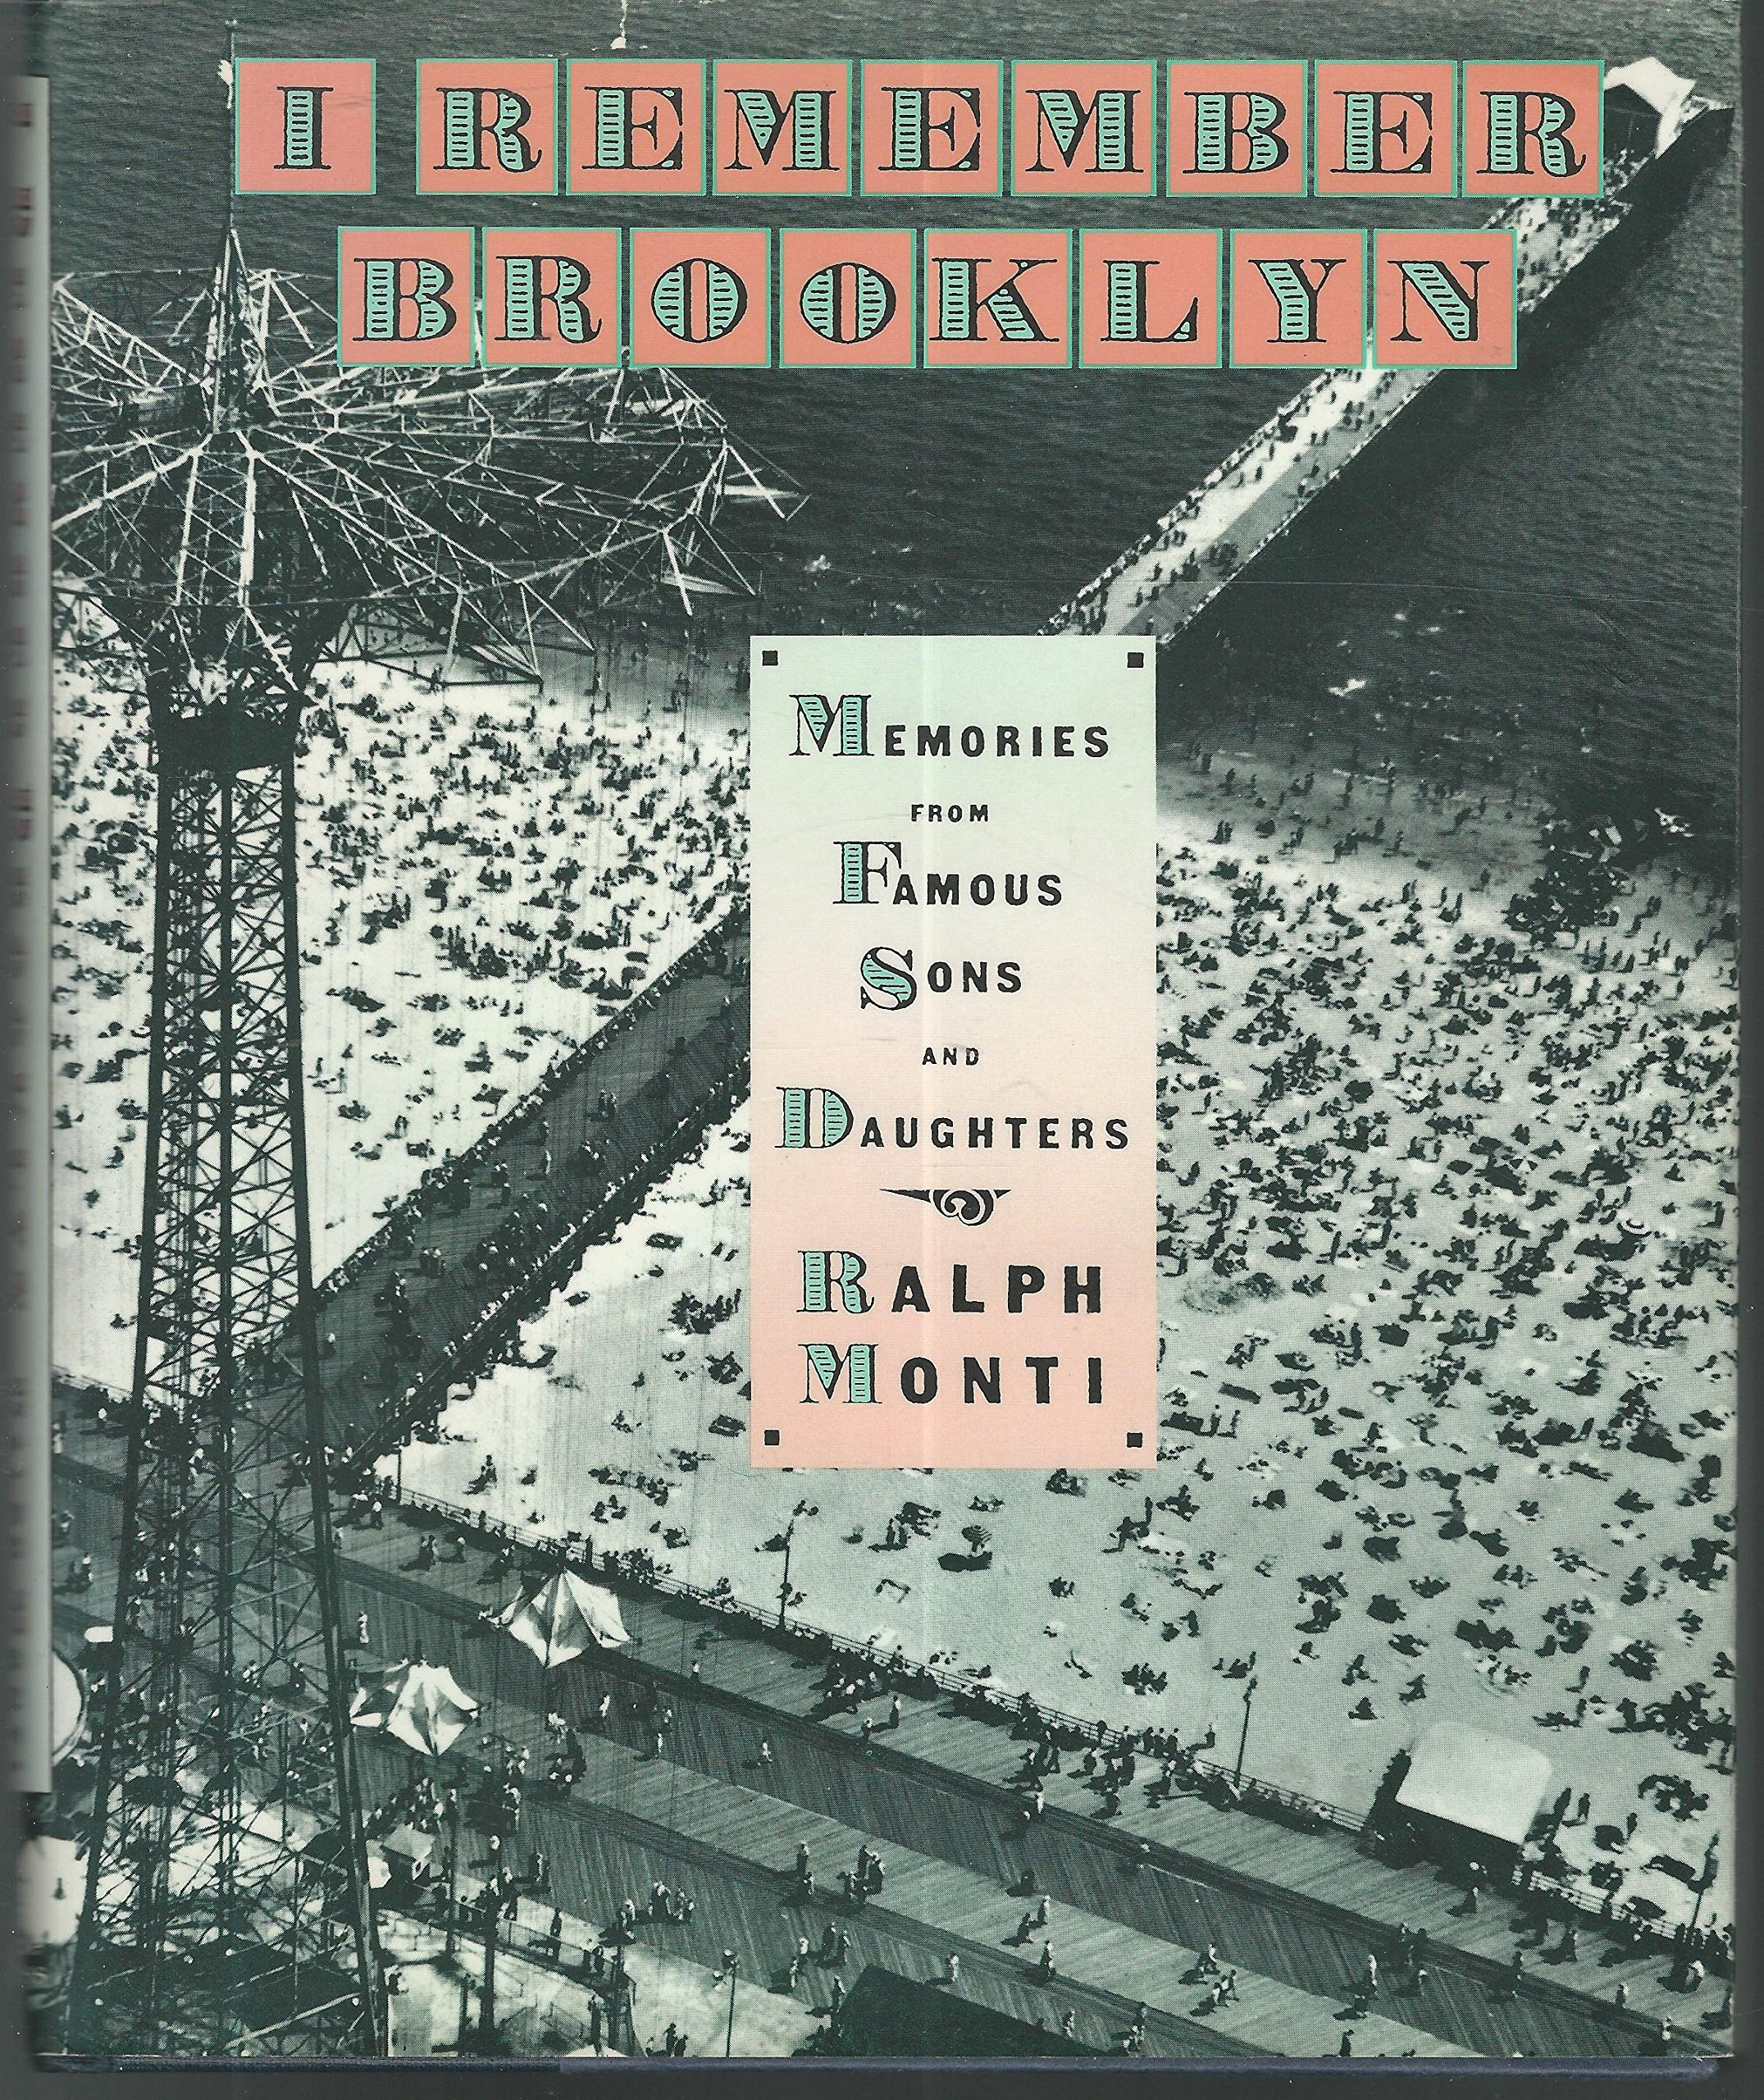 I Remember Brooklyn: Memories from Famous Sons and Daughters